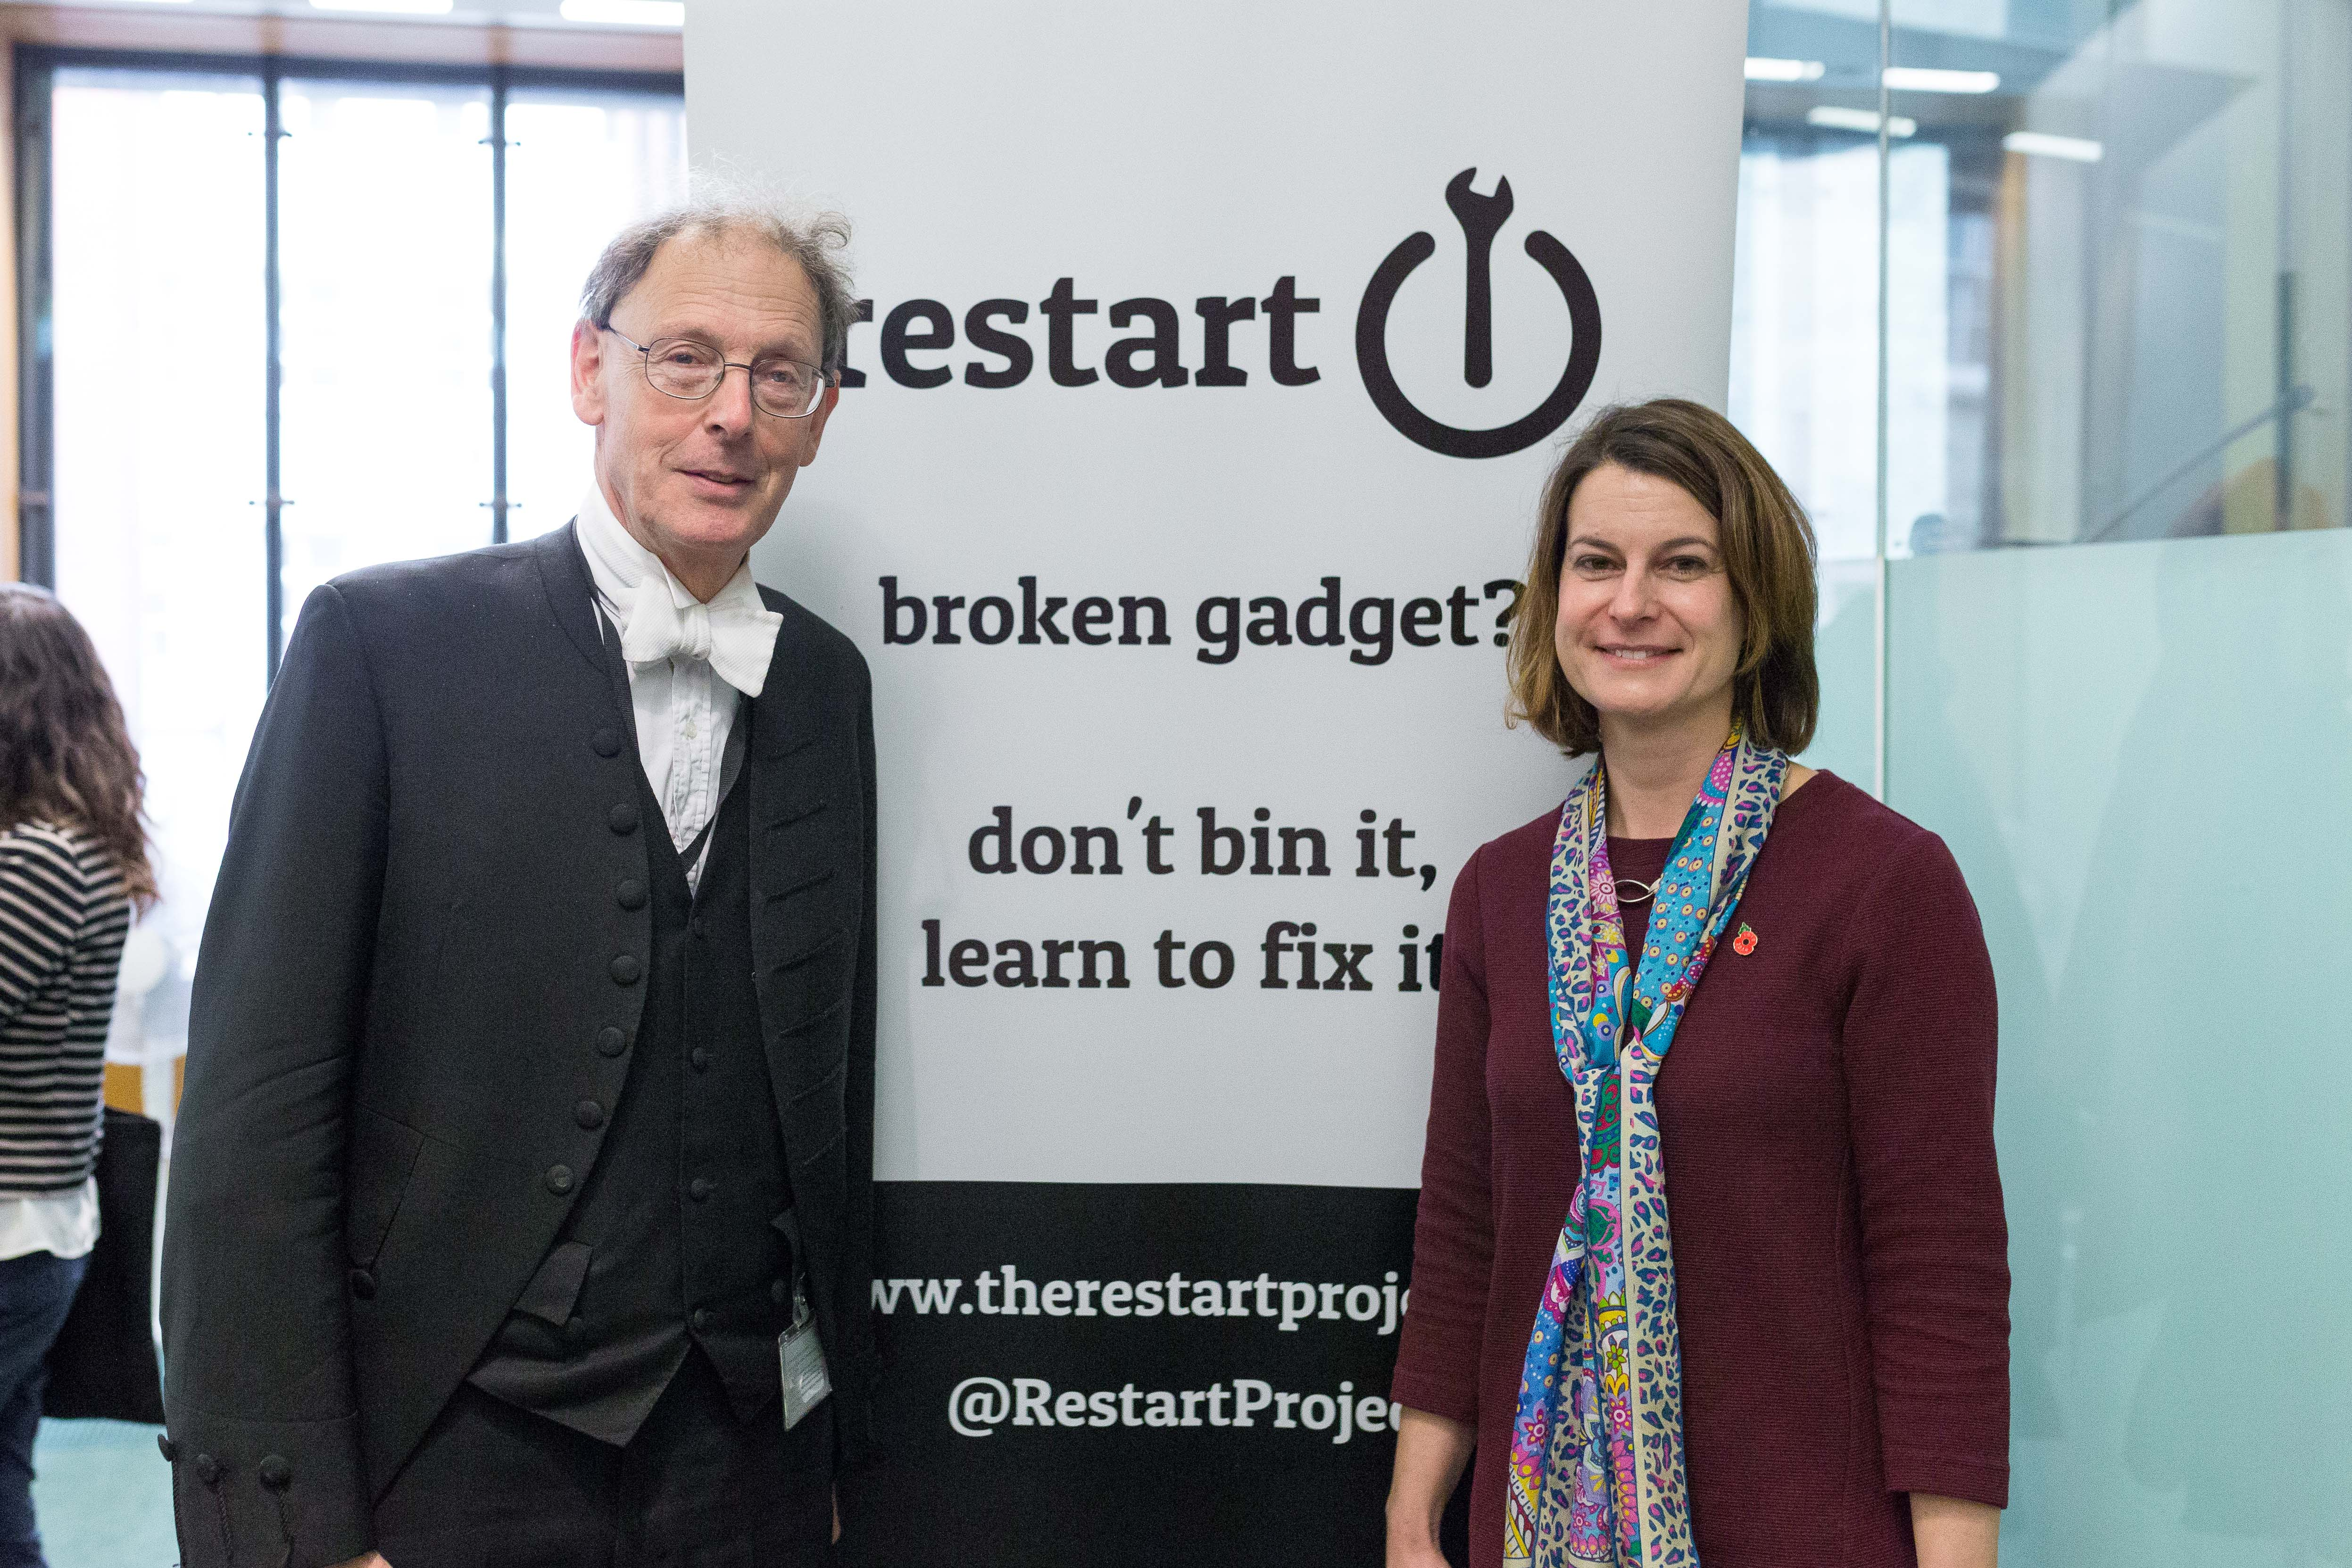 restart-party-at-portcullis-house-on-8th-november-2016-by-brendan-foster-photography-2016-177-1